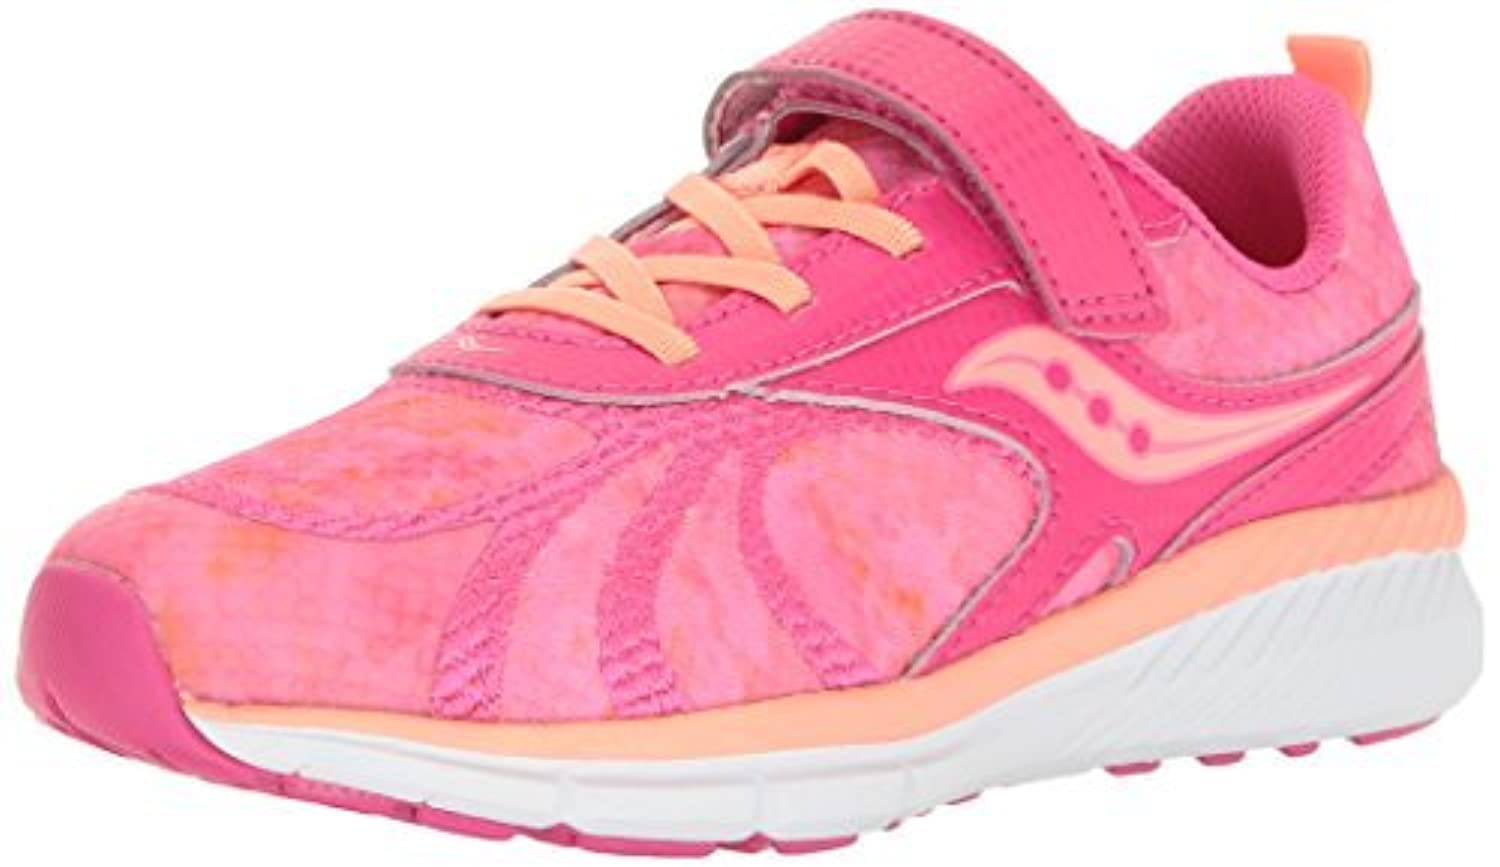 Saucony Velocity A/C Running Shoe Pink/Coral 1.5 M US Little Kid [並行輸入品]